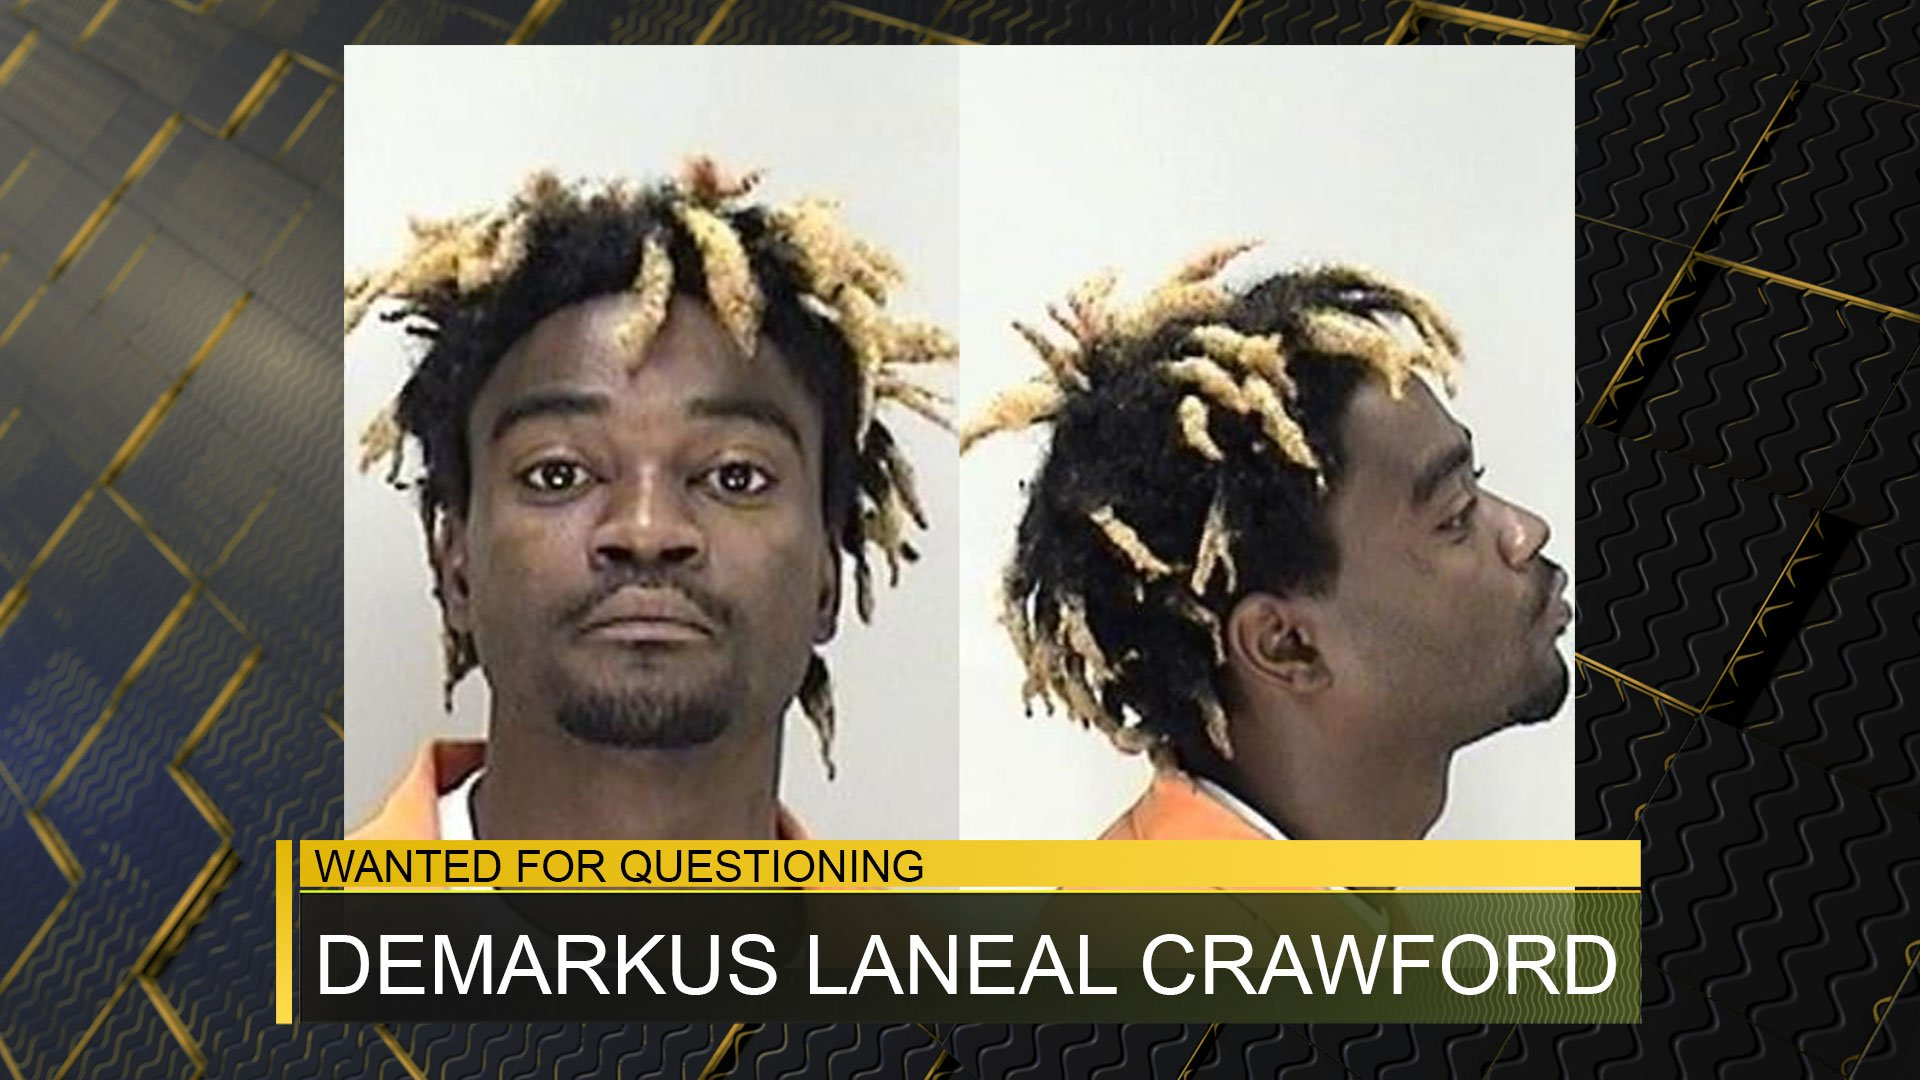 Demarkus Laneal Crawford (source: Richmond County Sheriff's Office)